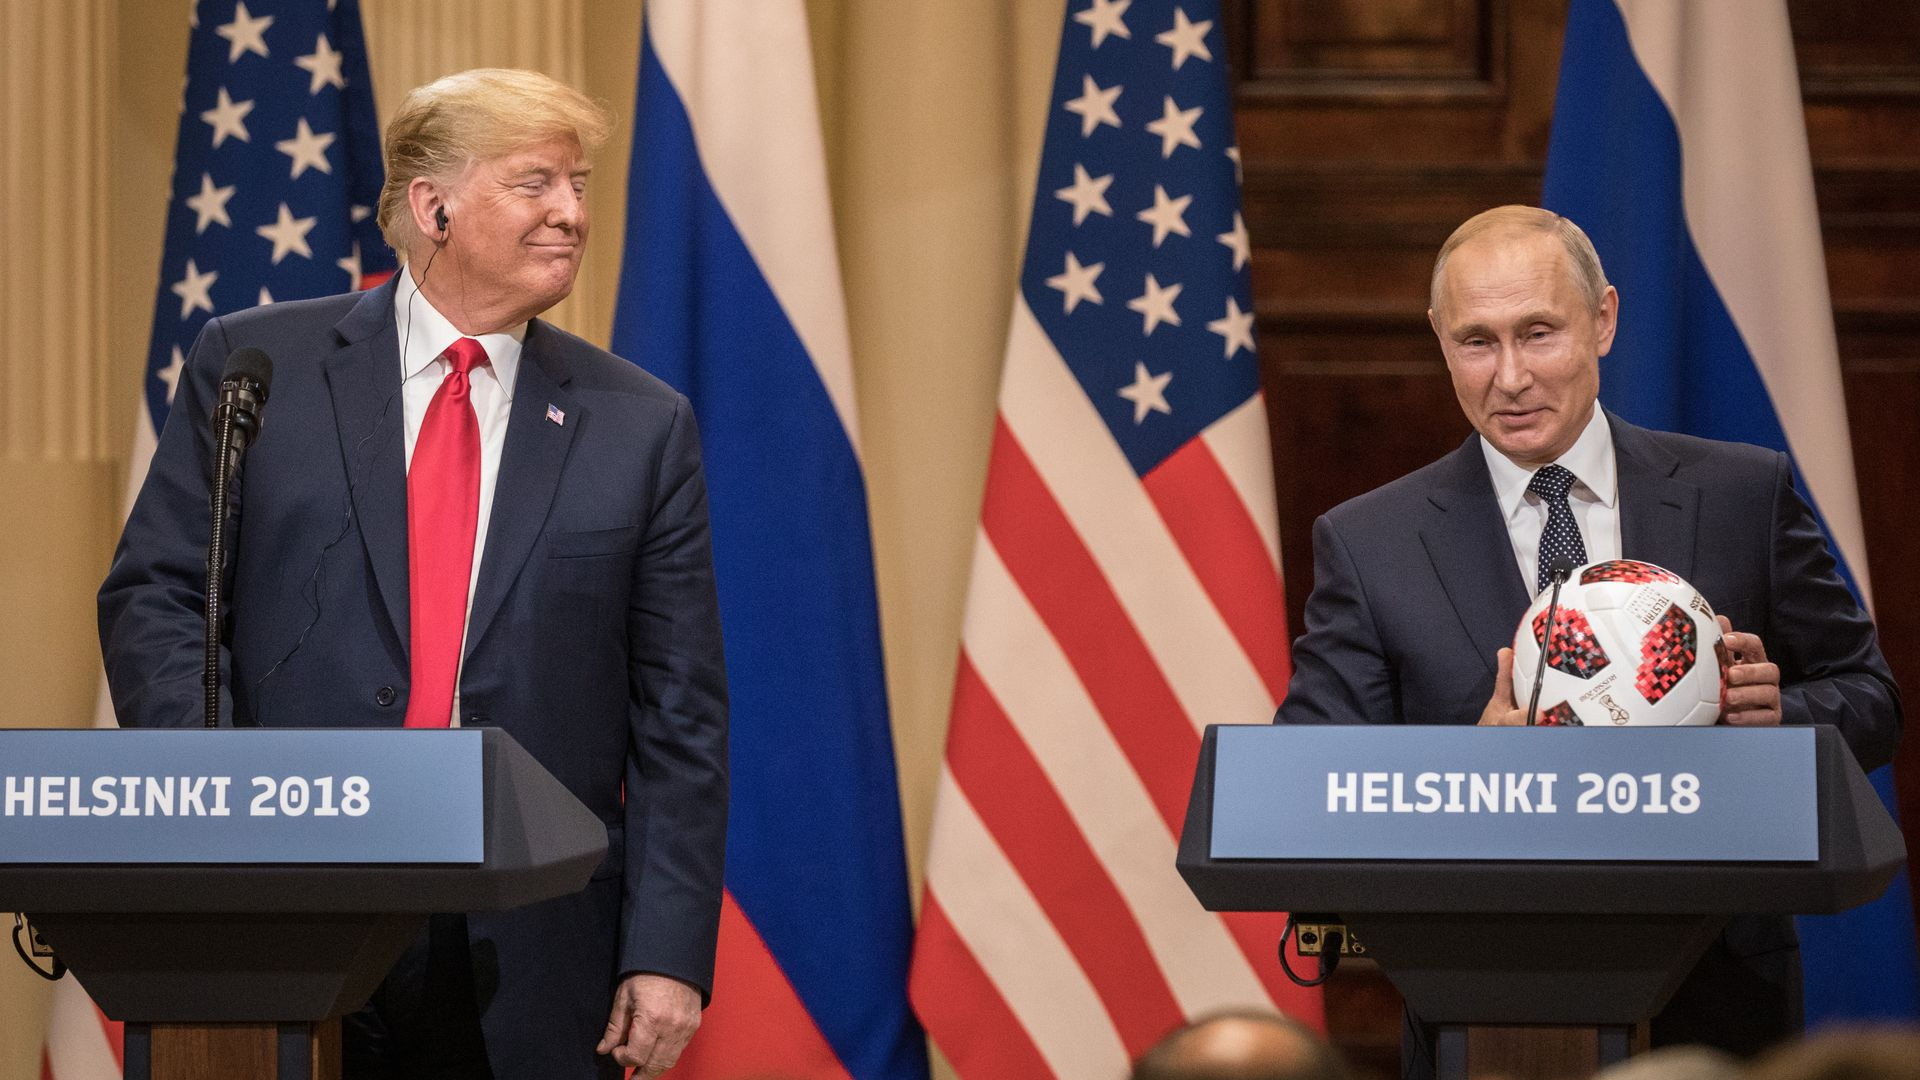 Russian President Vladimir Putin hands U.S. President Donald Trump a World Cup football during a joint press conference after their summit on July 16, 2018, in Helsinki.